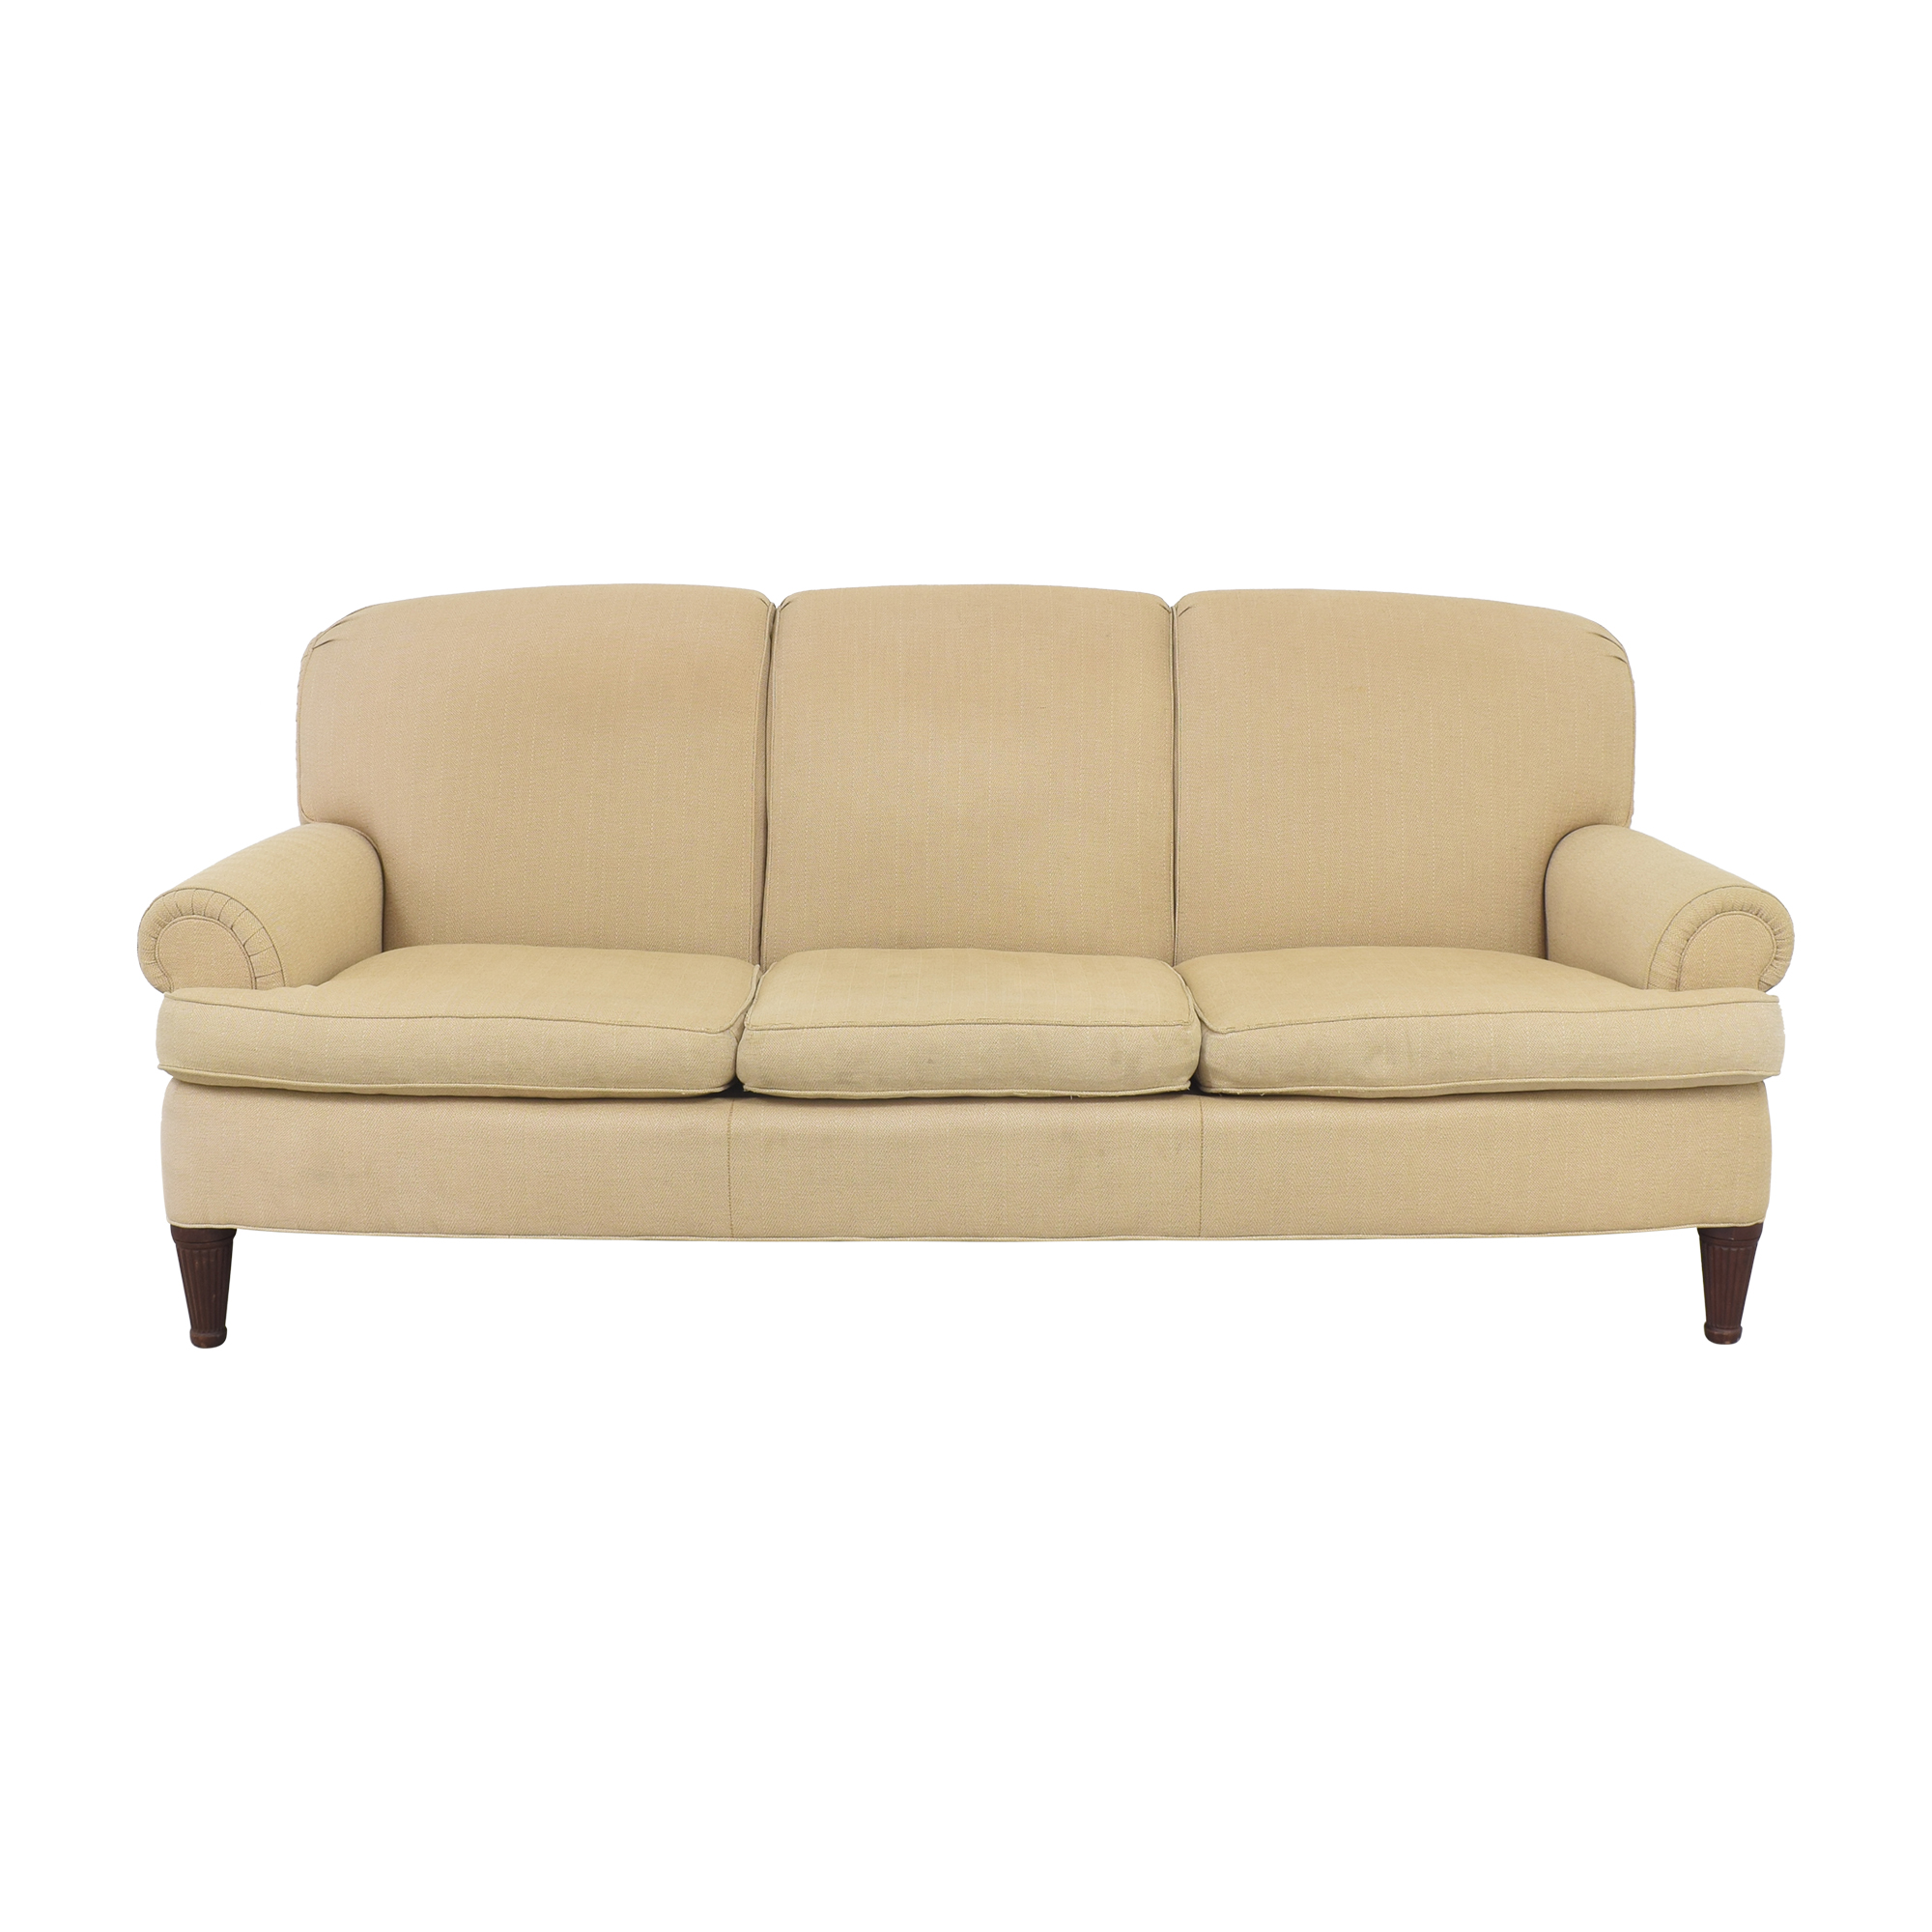 Ralph Lauren Home Ralph Lauren Upholstered Roll Arm Sofa used